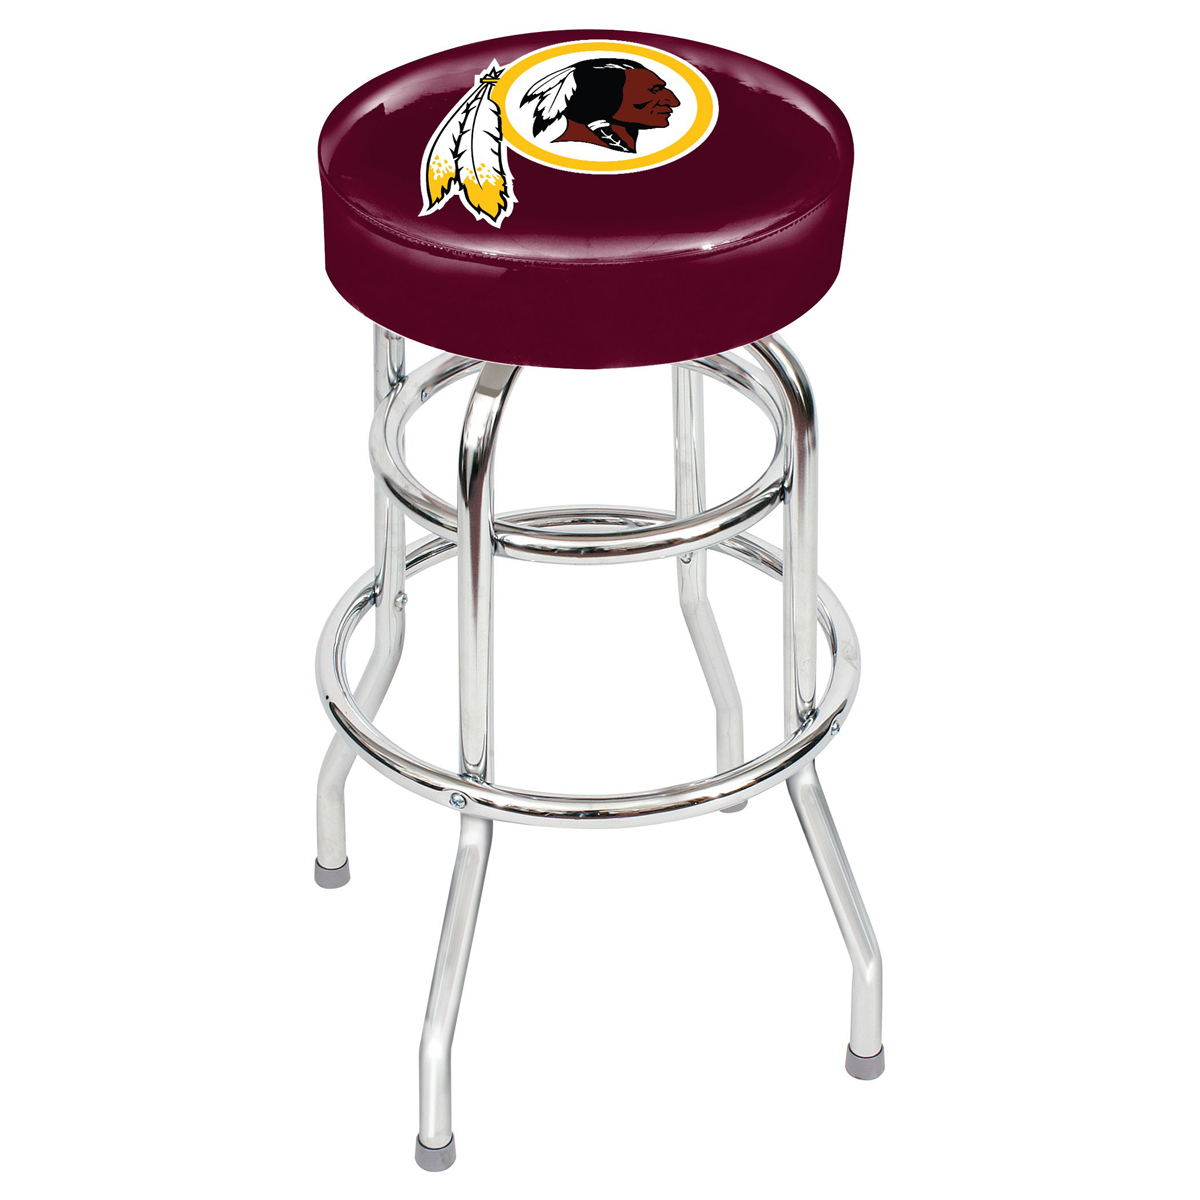 "WASHINGTON REDSKINS 30"" BAR STOOL"